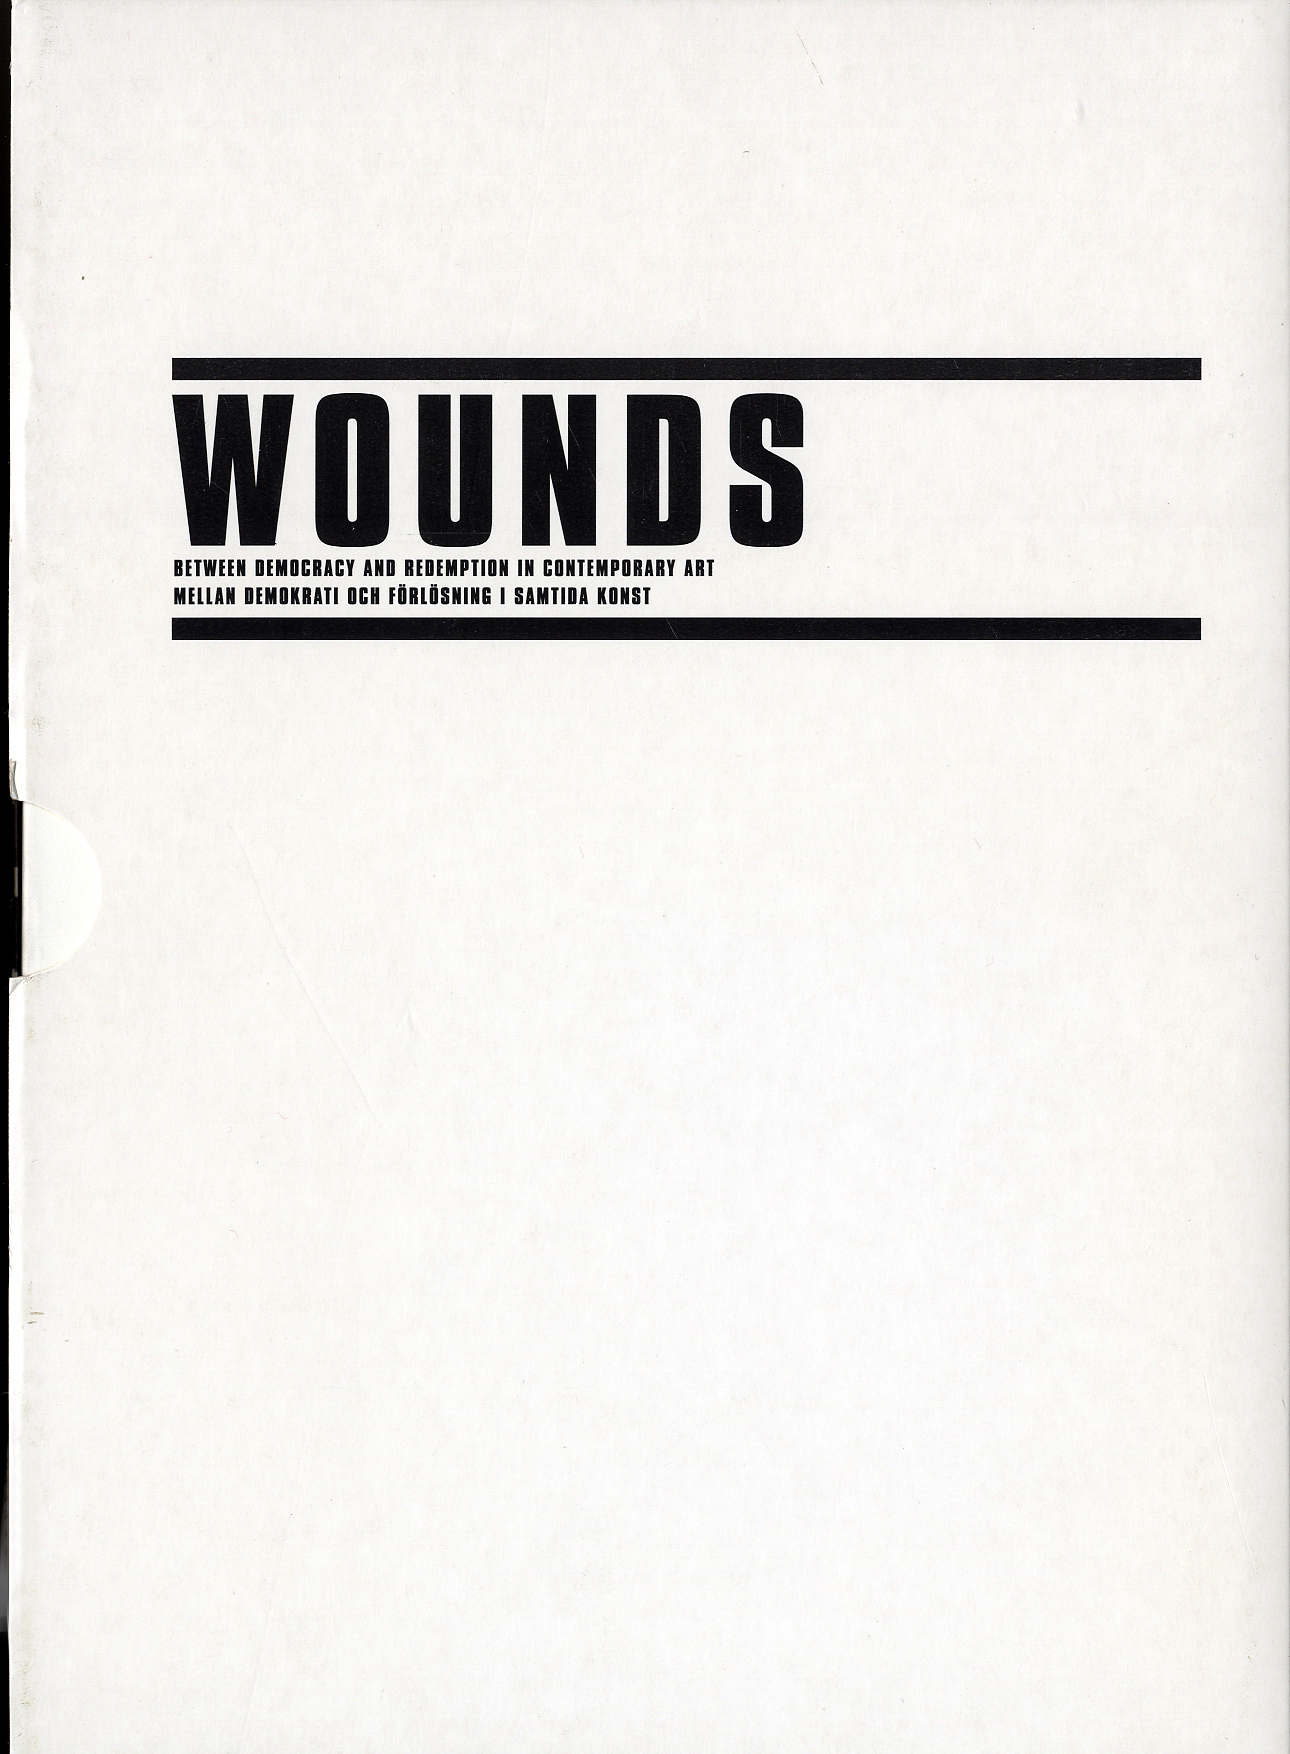 WOUNDS: Between Democracy and Redemption in Contemporary Art / Mellan Demokrati och Förlösning i Samtida Konst (Two Volumes)